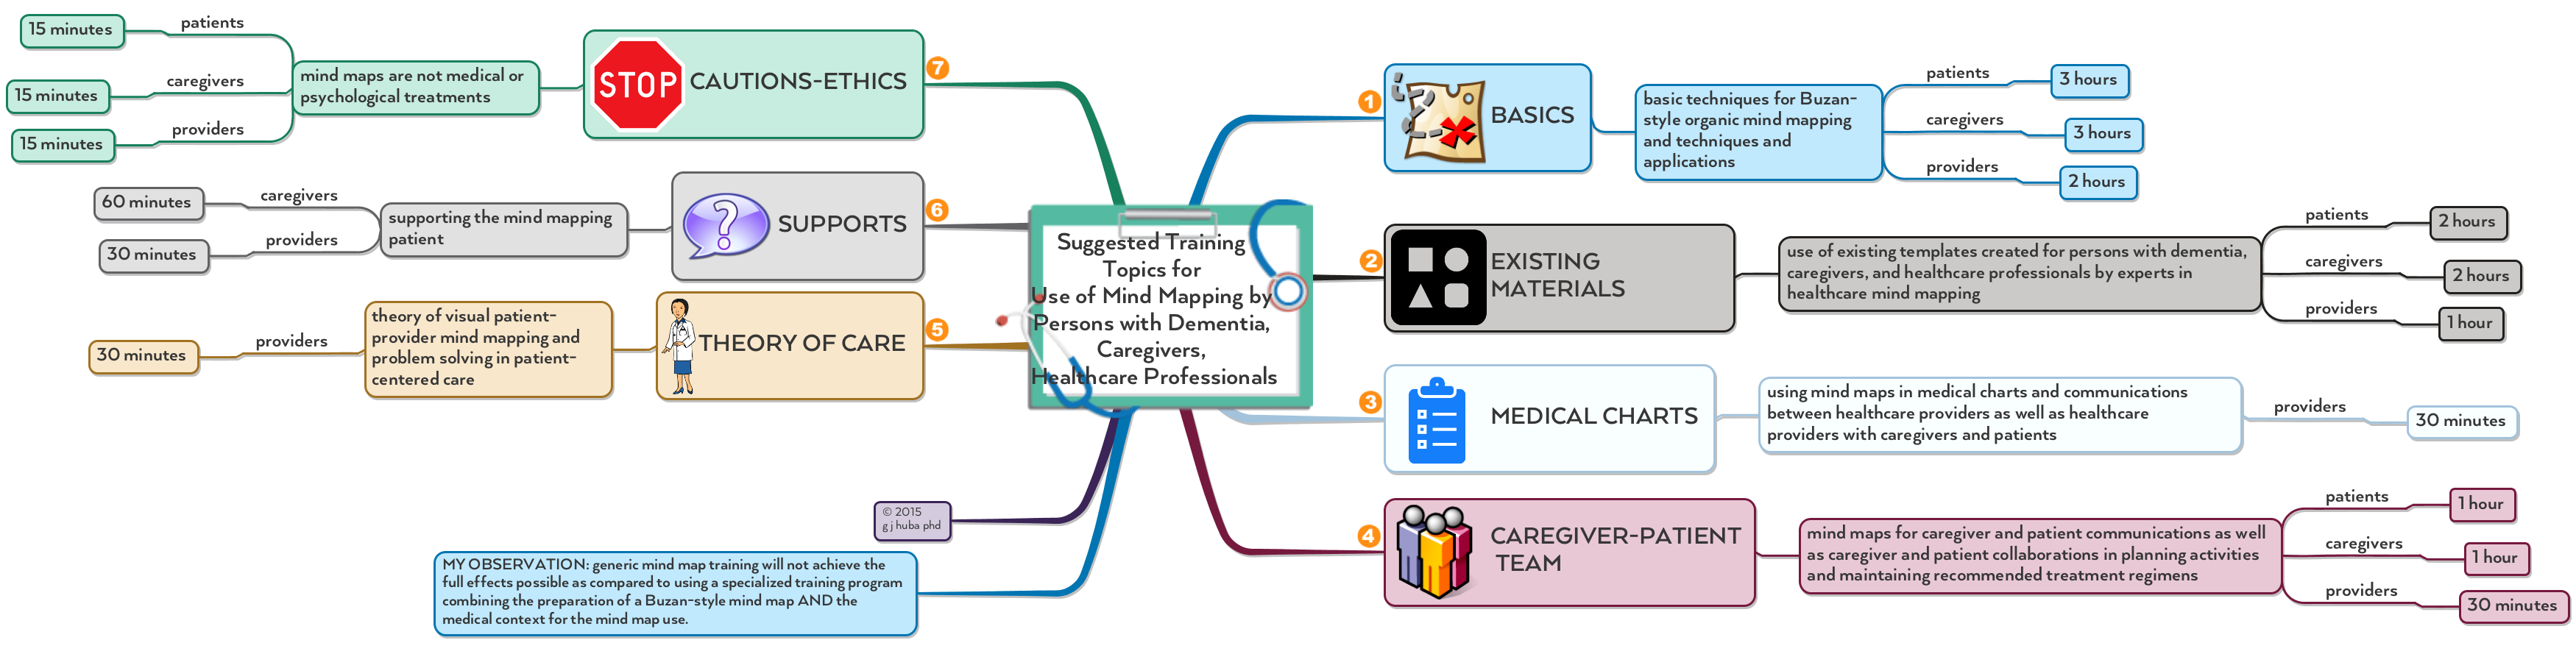 Suggested Training  Topics for  Use of Mind Mapping by  Persons with Dementia,  Caregivers,  Healthcare Professionals